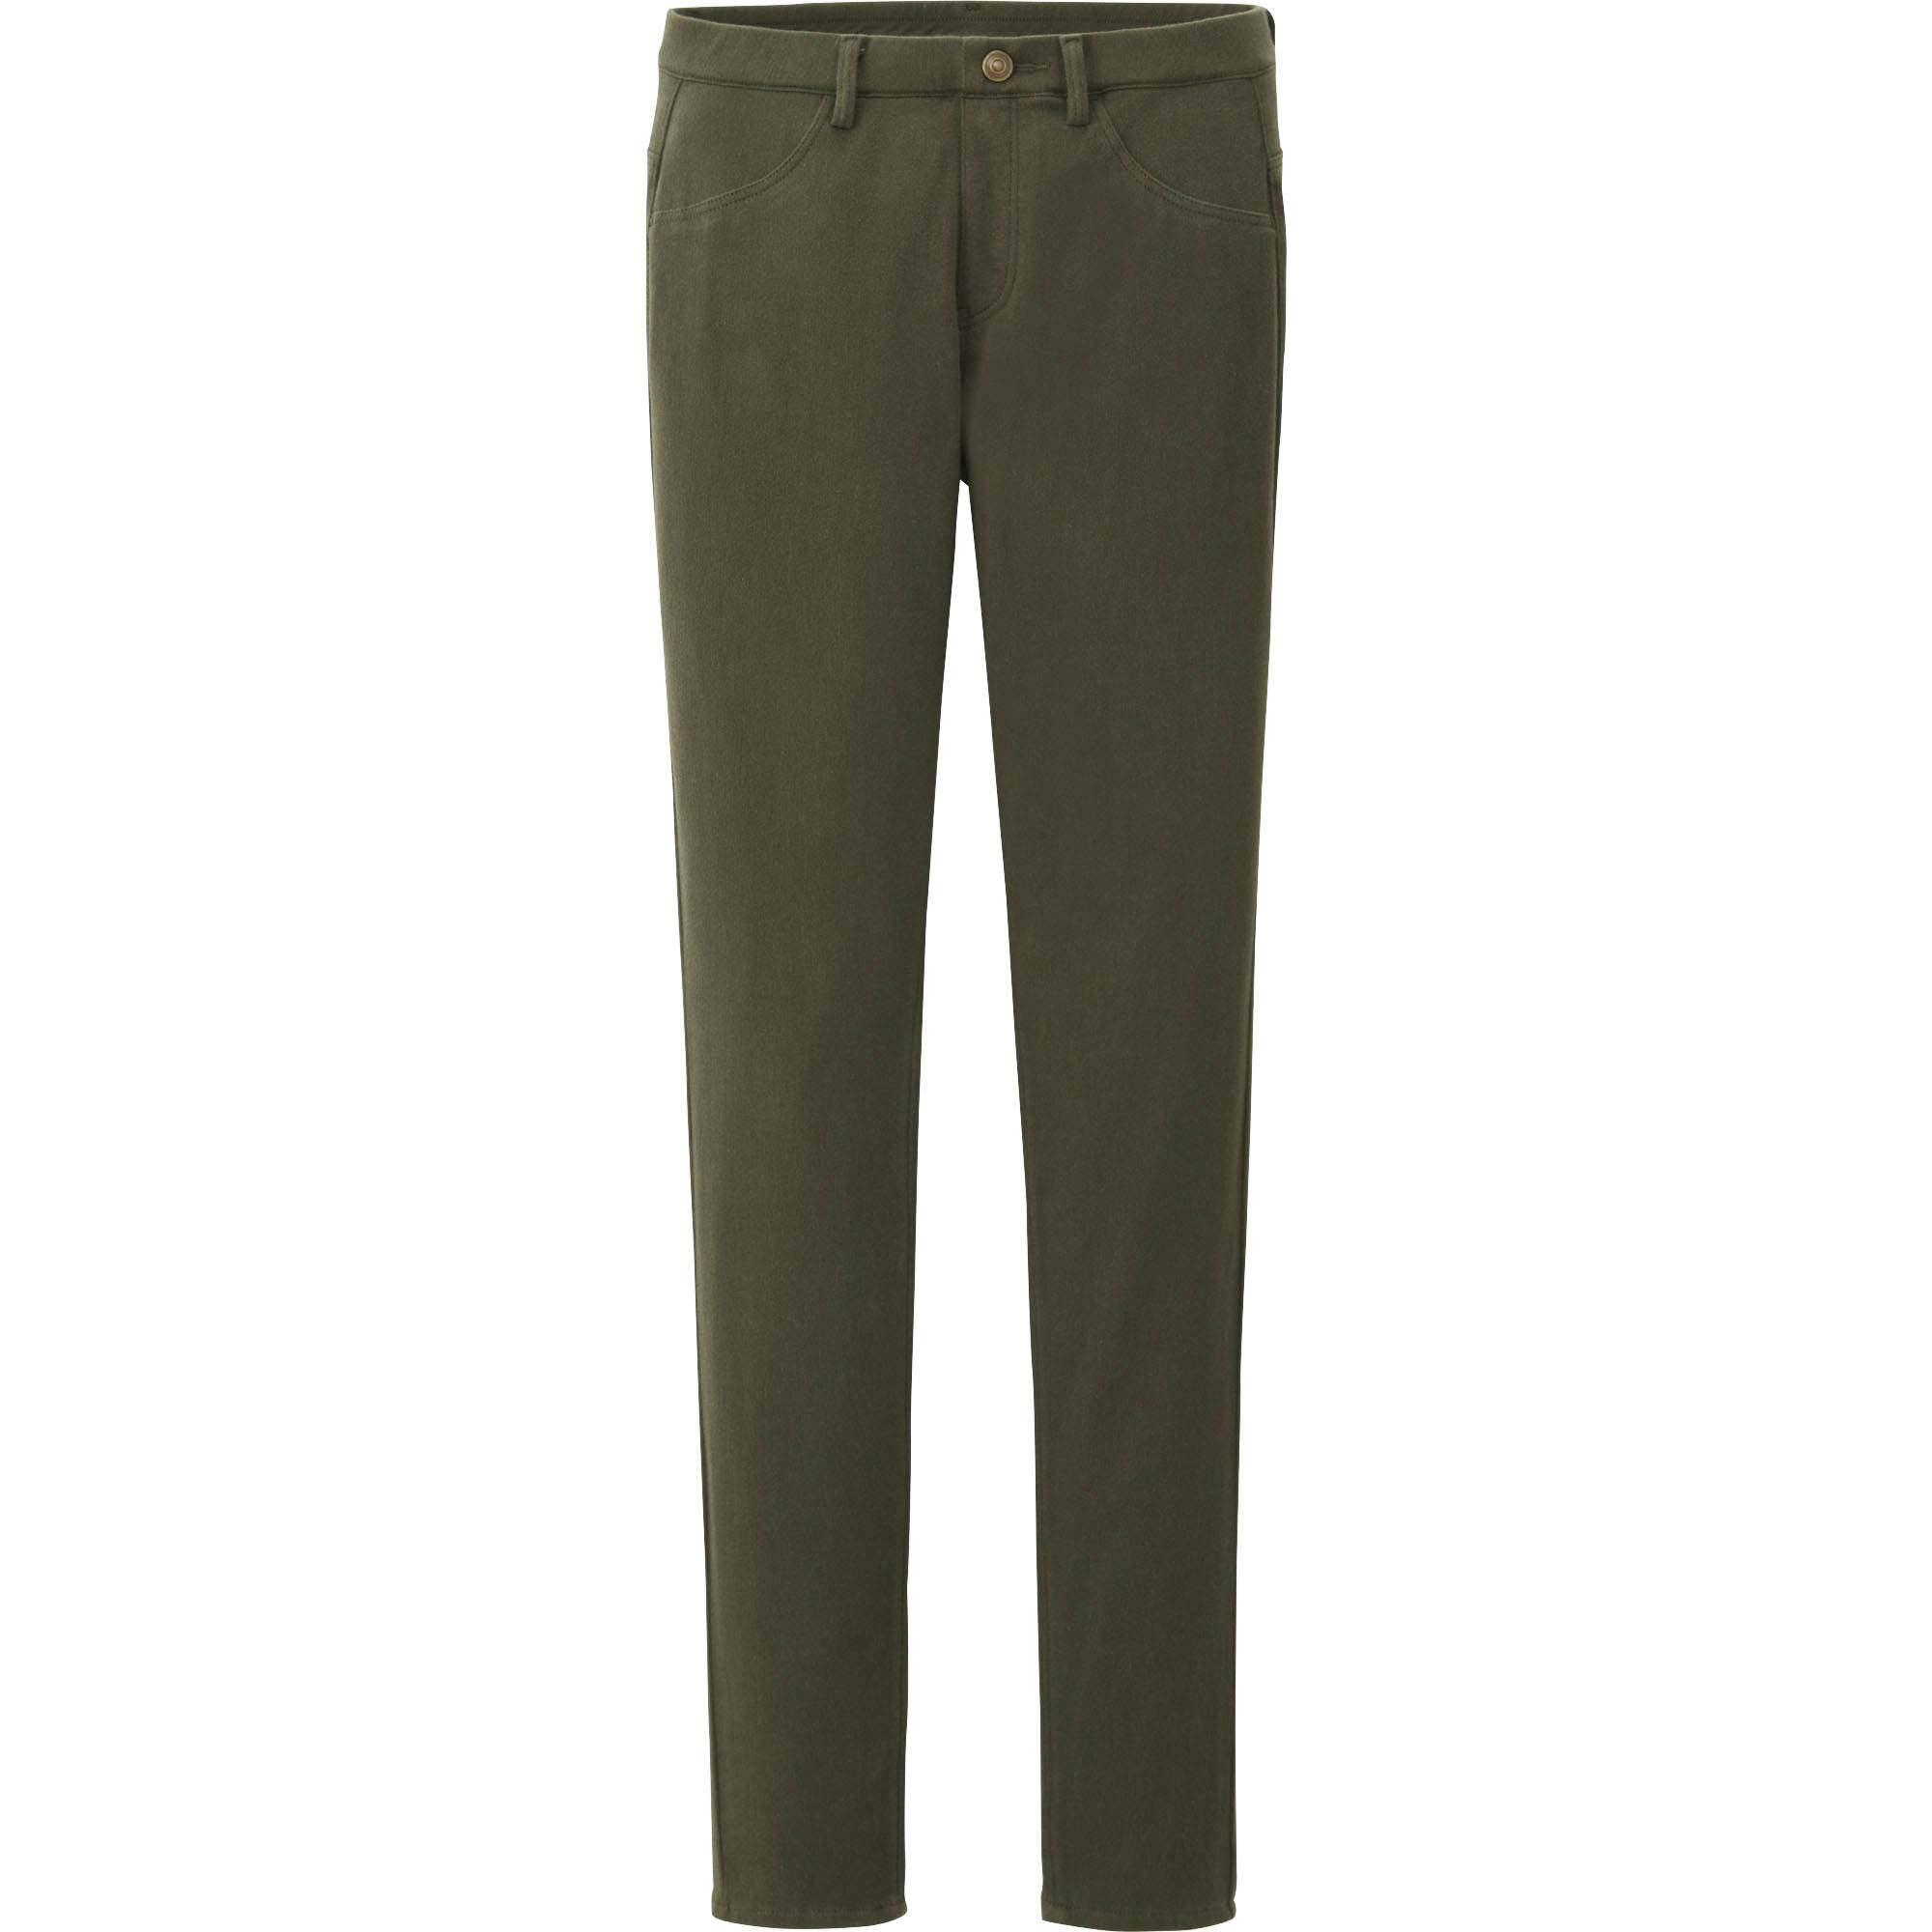 Loose Pants For Women